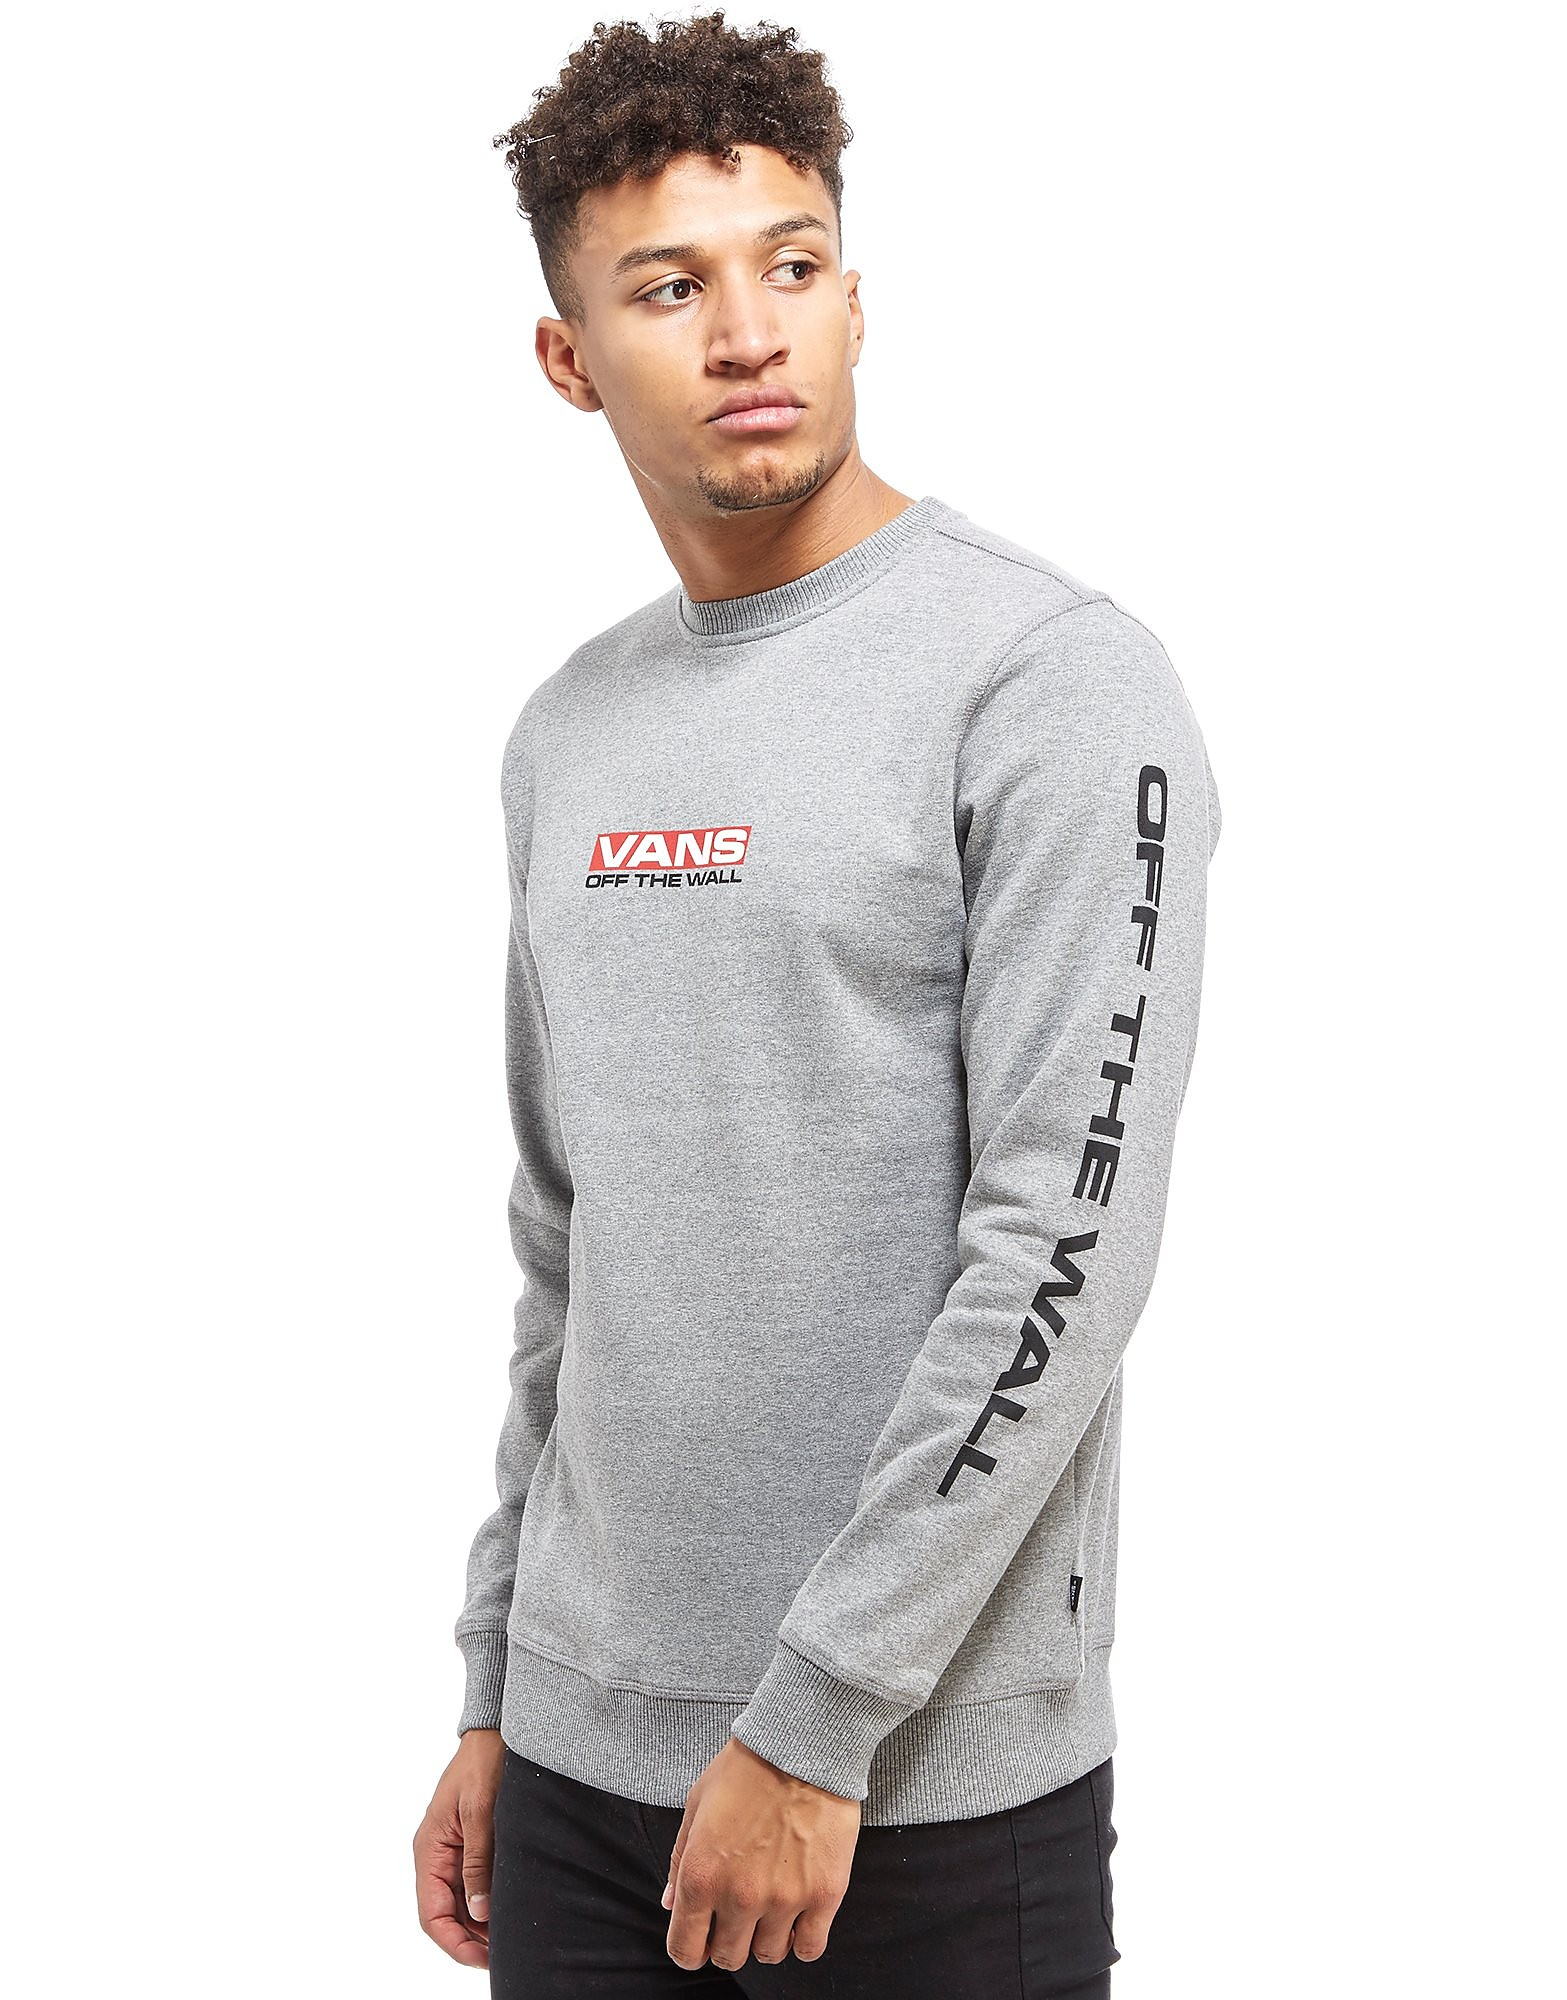 Vans Side Waze Crew Sweatshirt